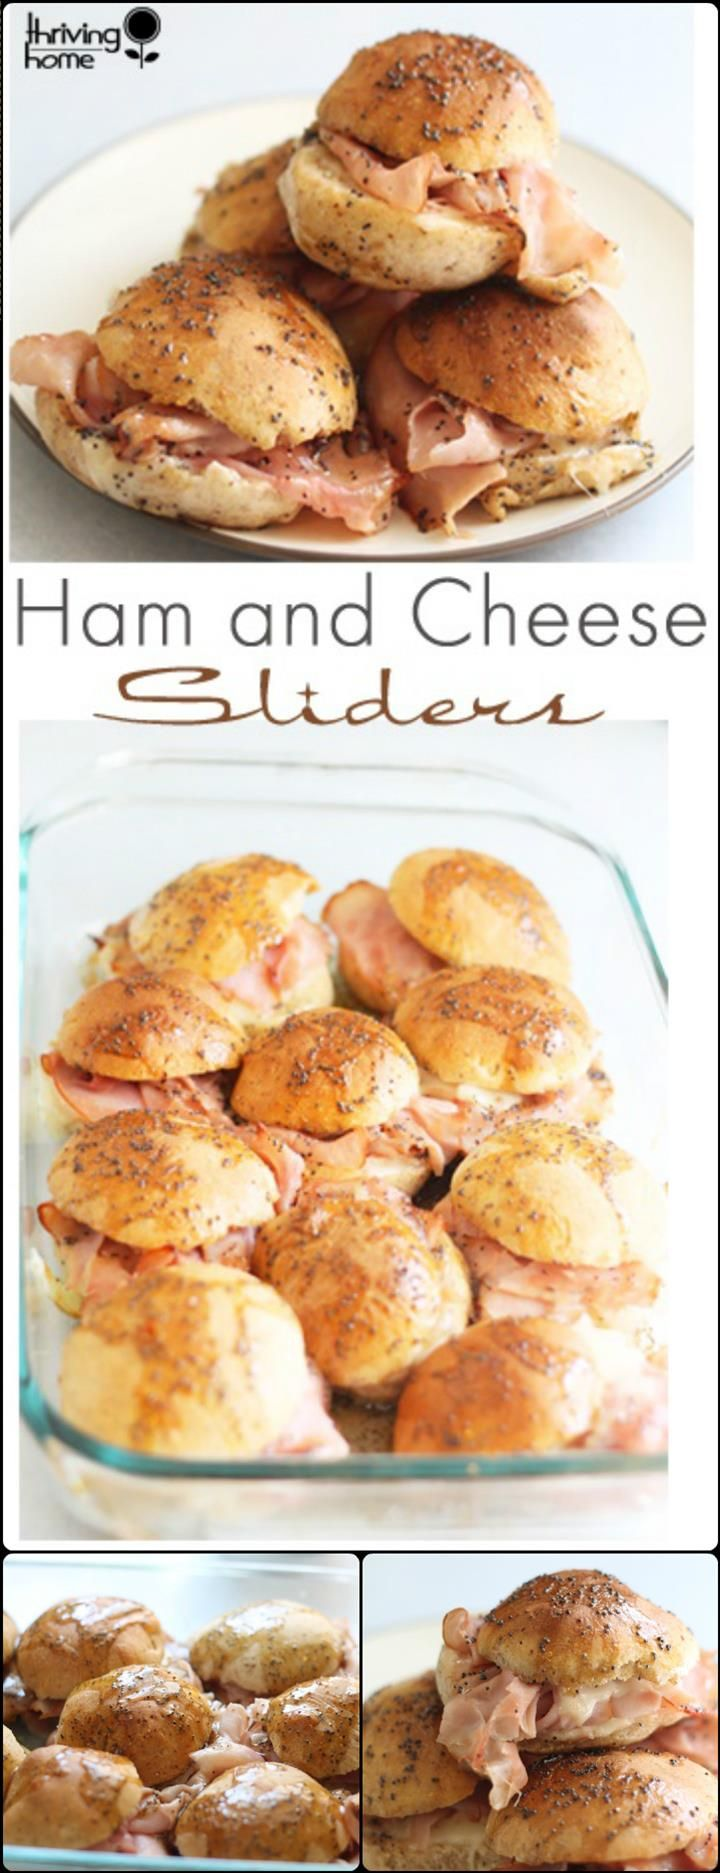 Ham and Cheese Sliders – Easy Crowd Appetizer - 25 Recipes for Large Groups on a Budget